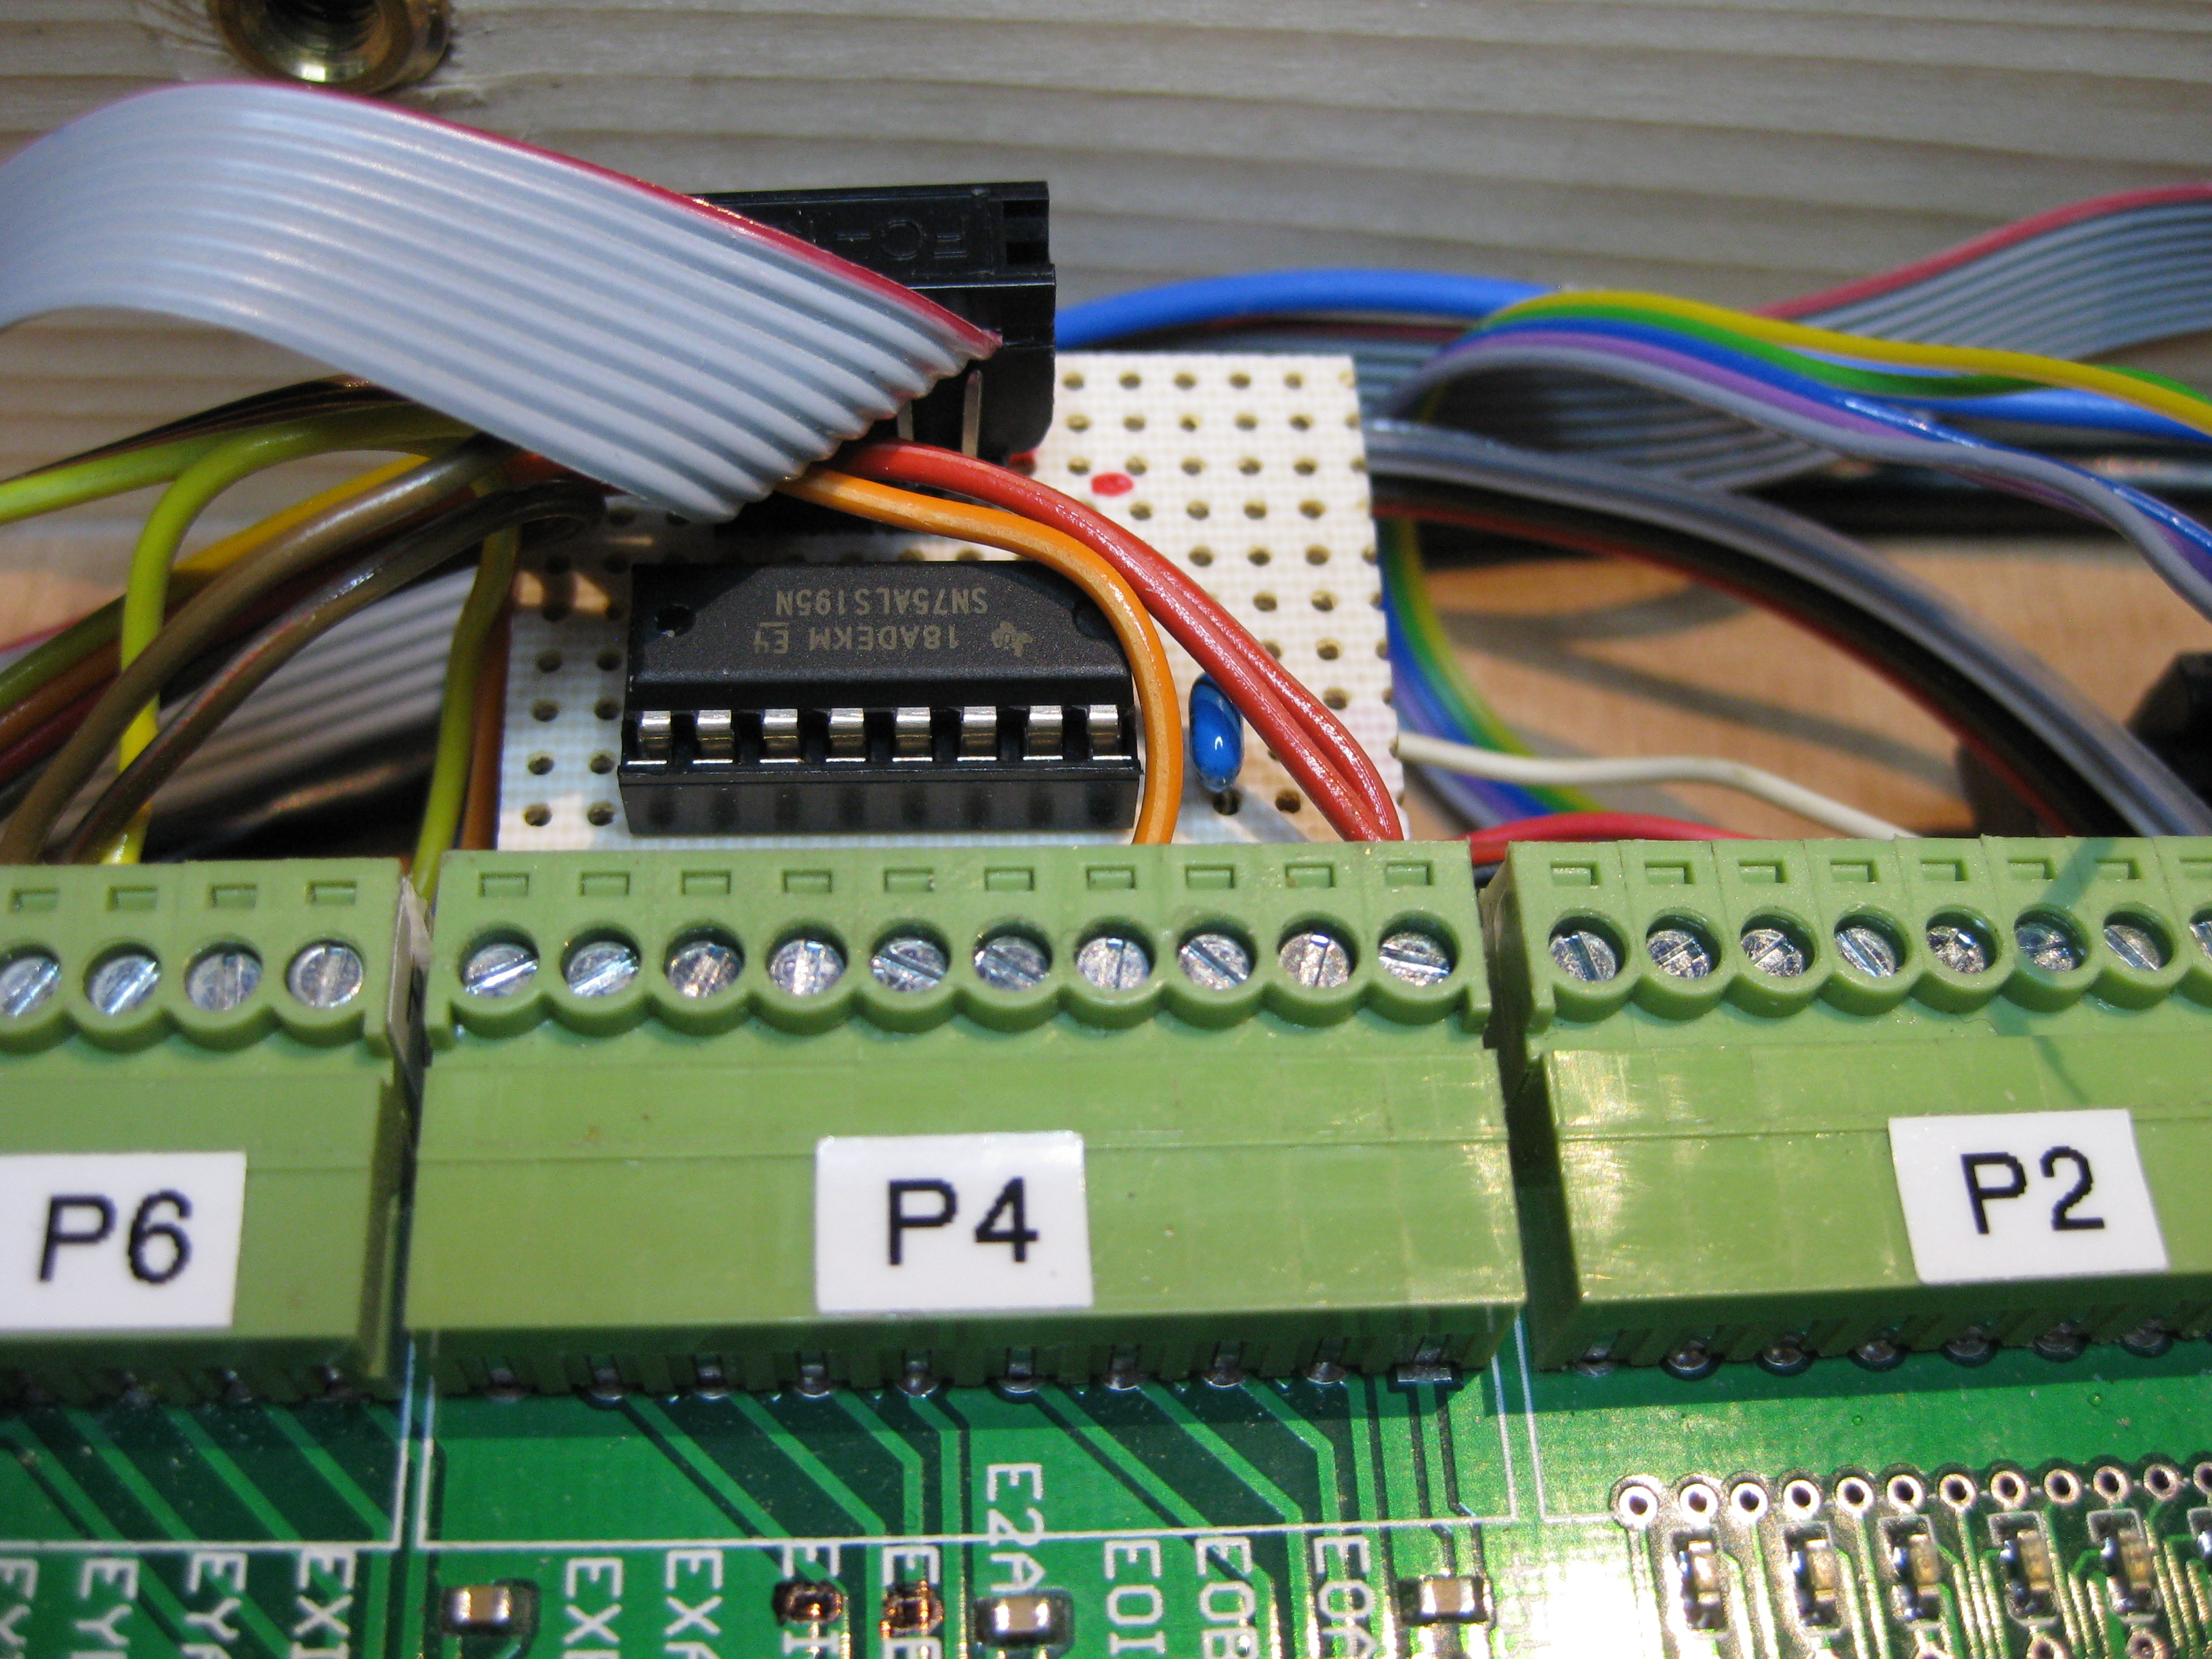 F1oat Cnc Experiments Picaxe Serial Cable Wiring In Addition Pc Plc Programming Rs 422 To Ttl Level Conversion With A 75als195n